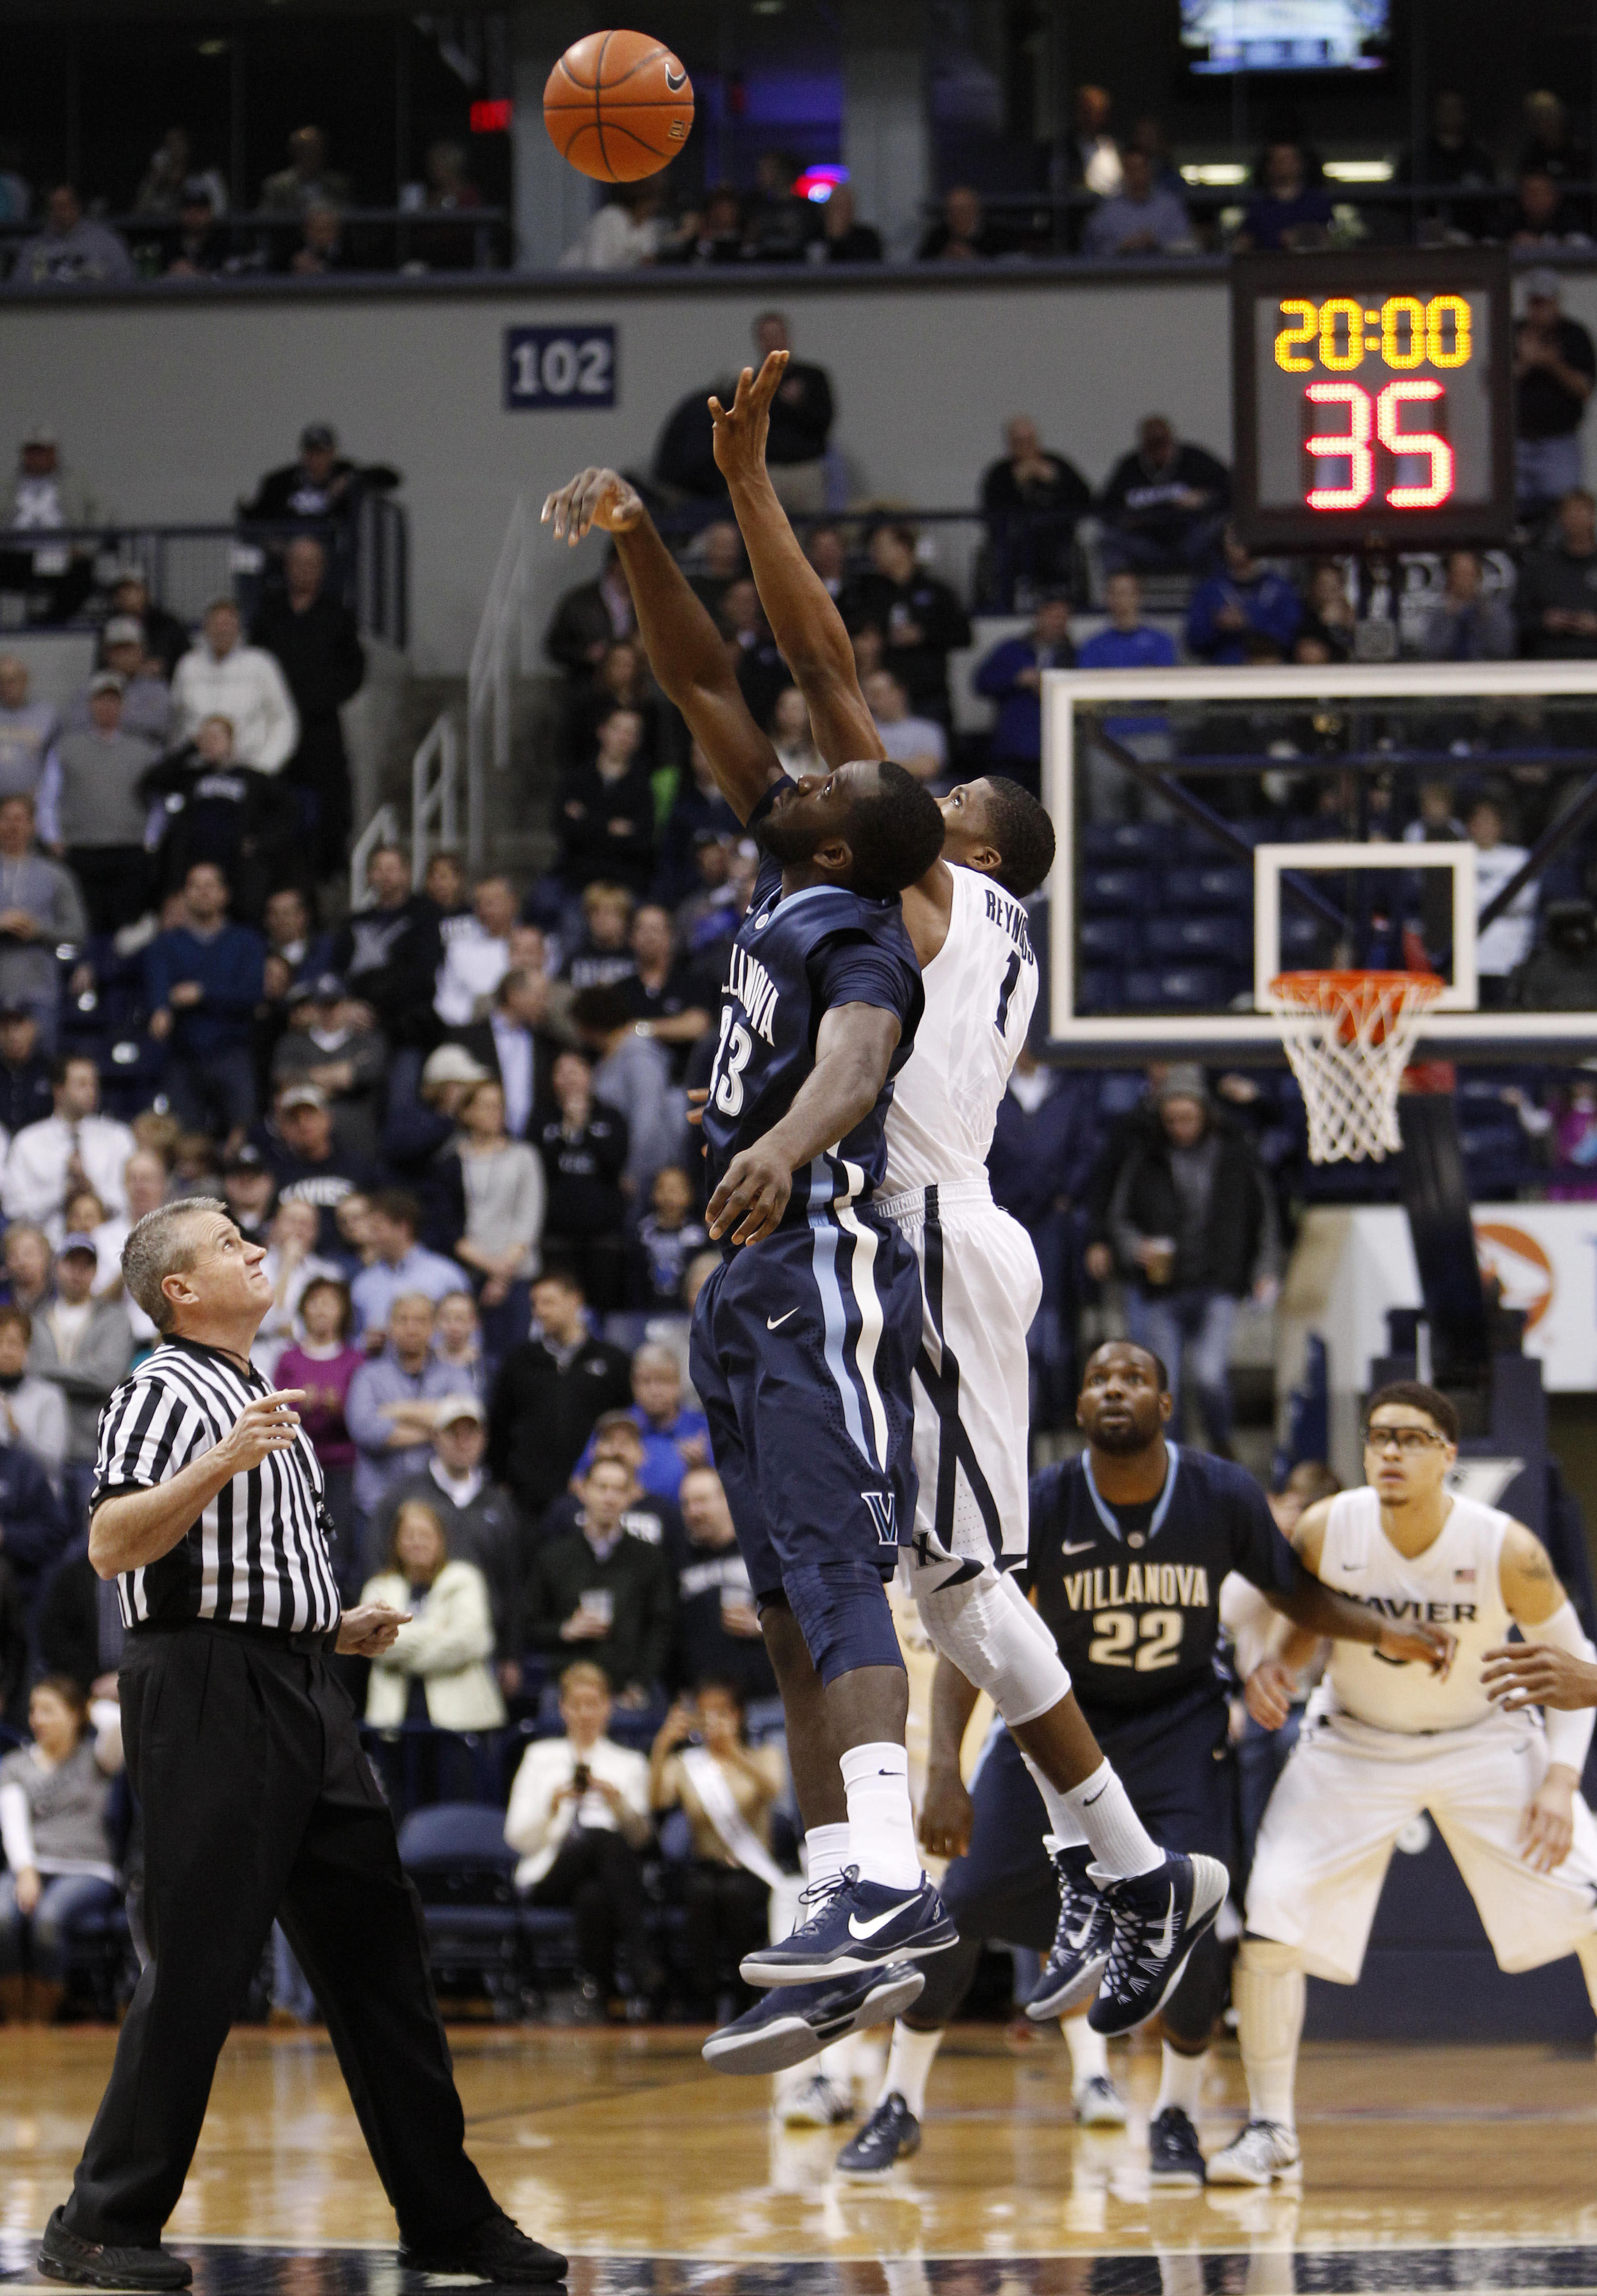 When the ball goes up this year, it will be over a newly designed Cintas Center floor.